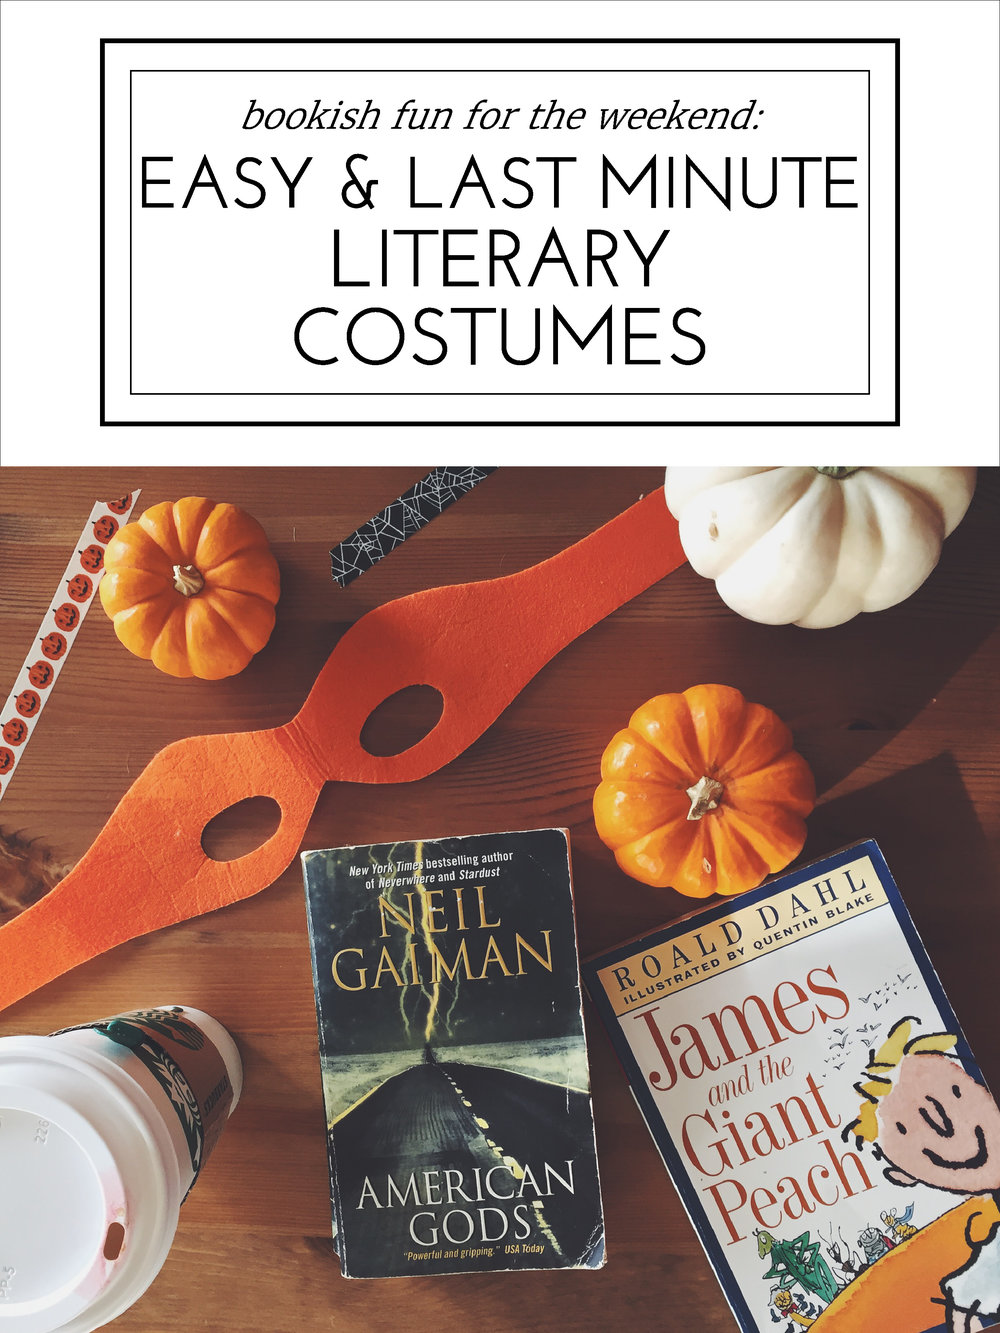 Easy & Last Minute Literary Costumes